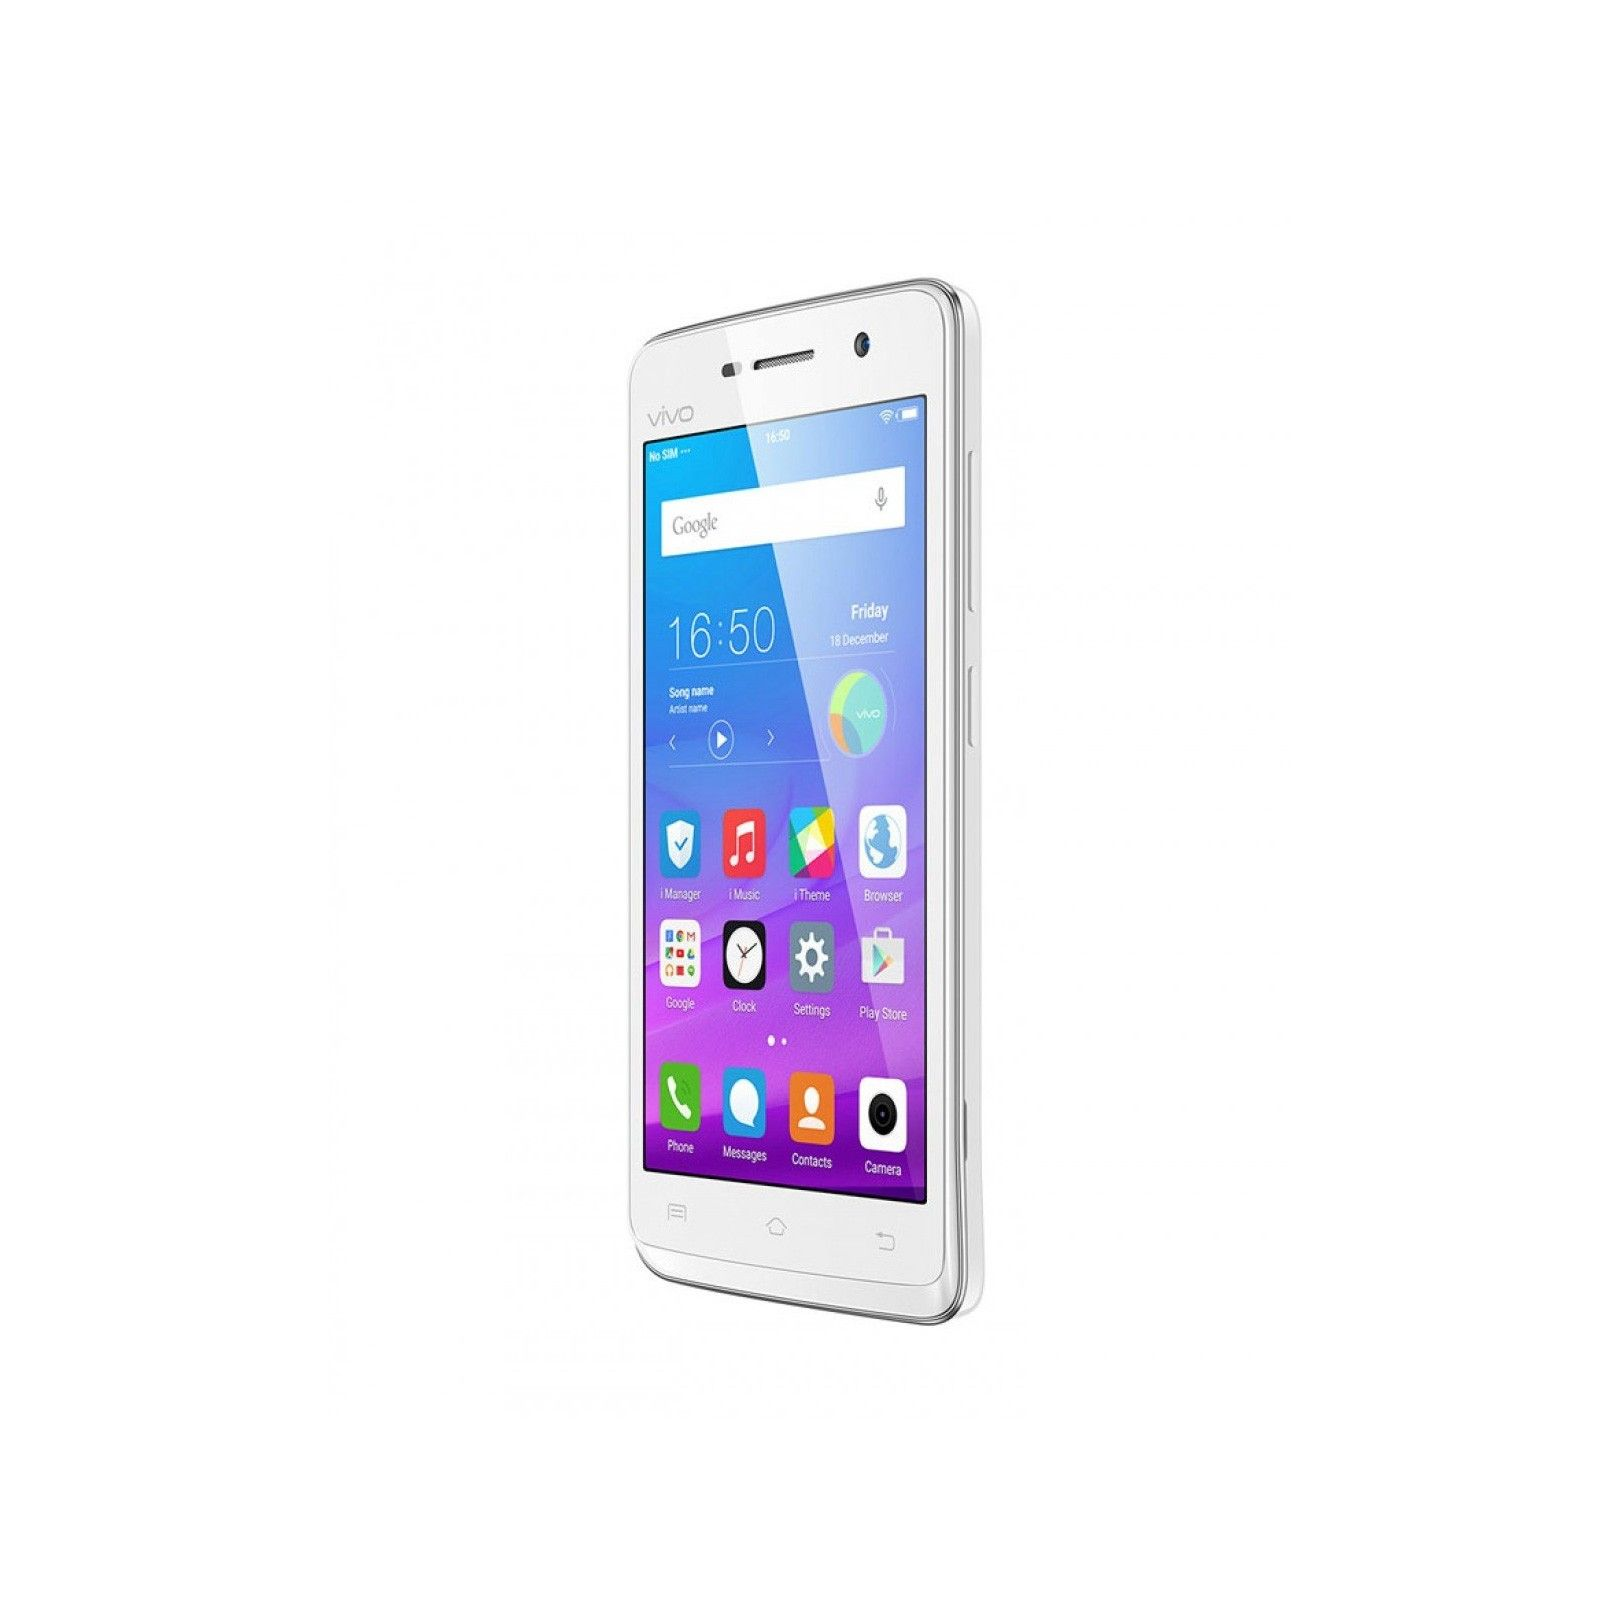 Buy Vivo Y21 (Grey) Online at Best Prices - Placewell Retail